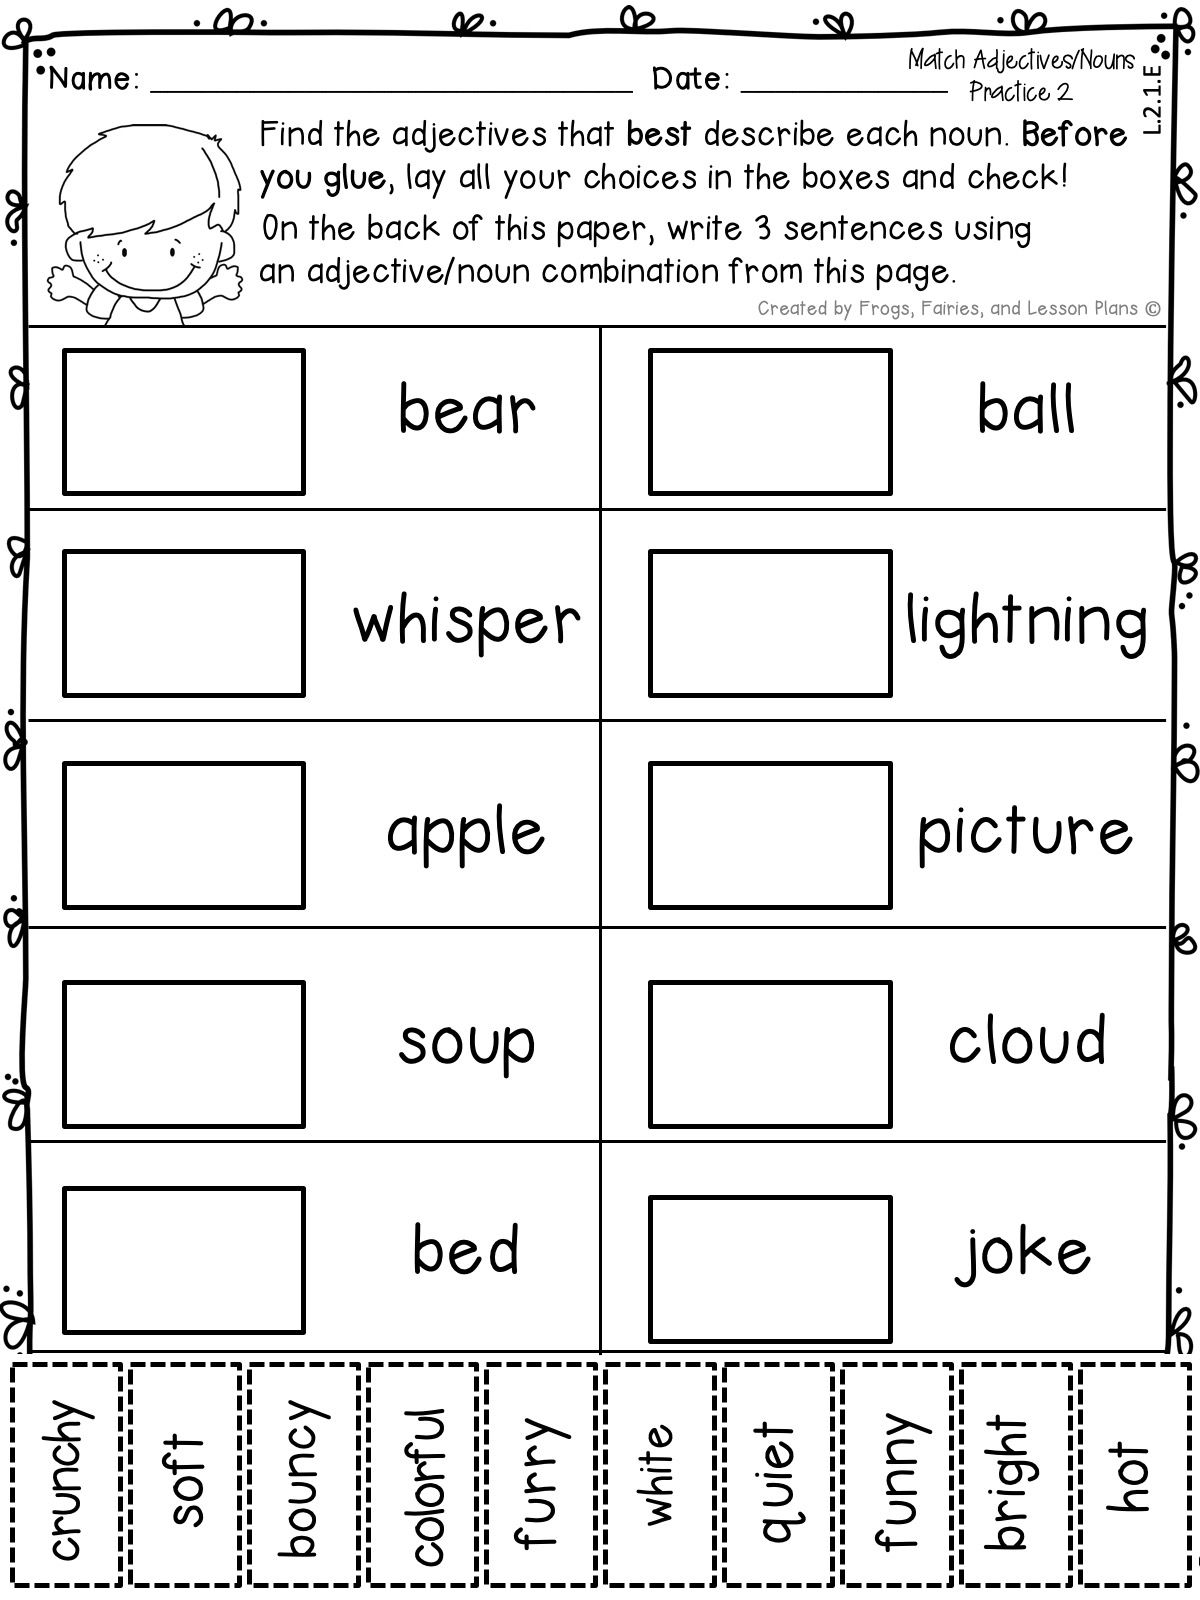 hight resolution of Adjective and Adverb Resources for 2nd Graders   Adjectives activities